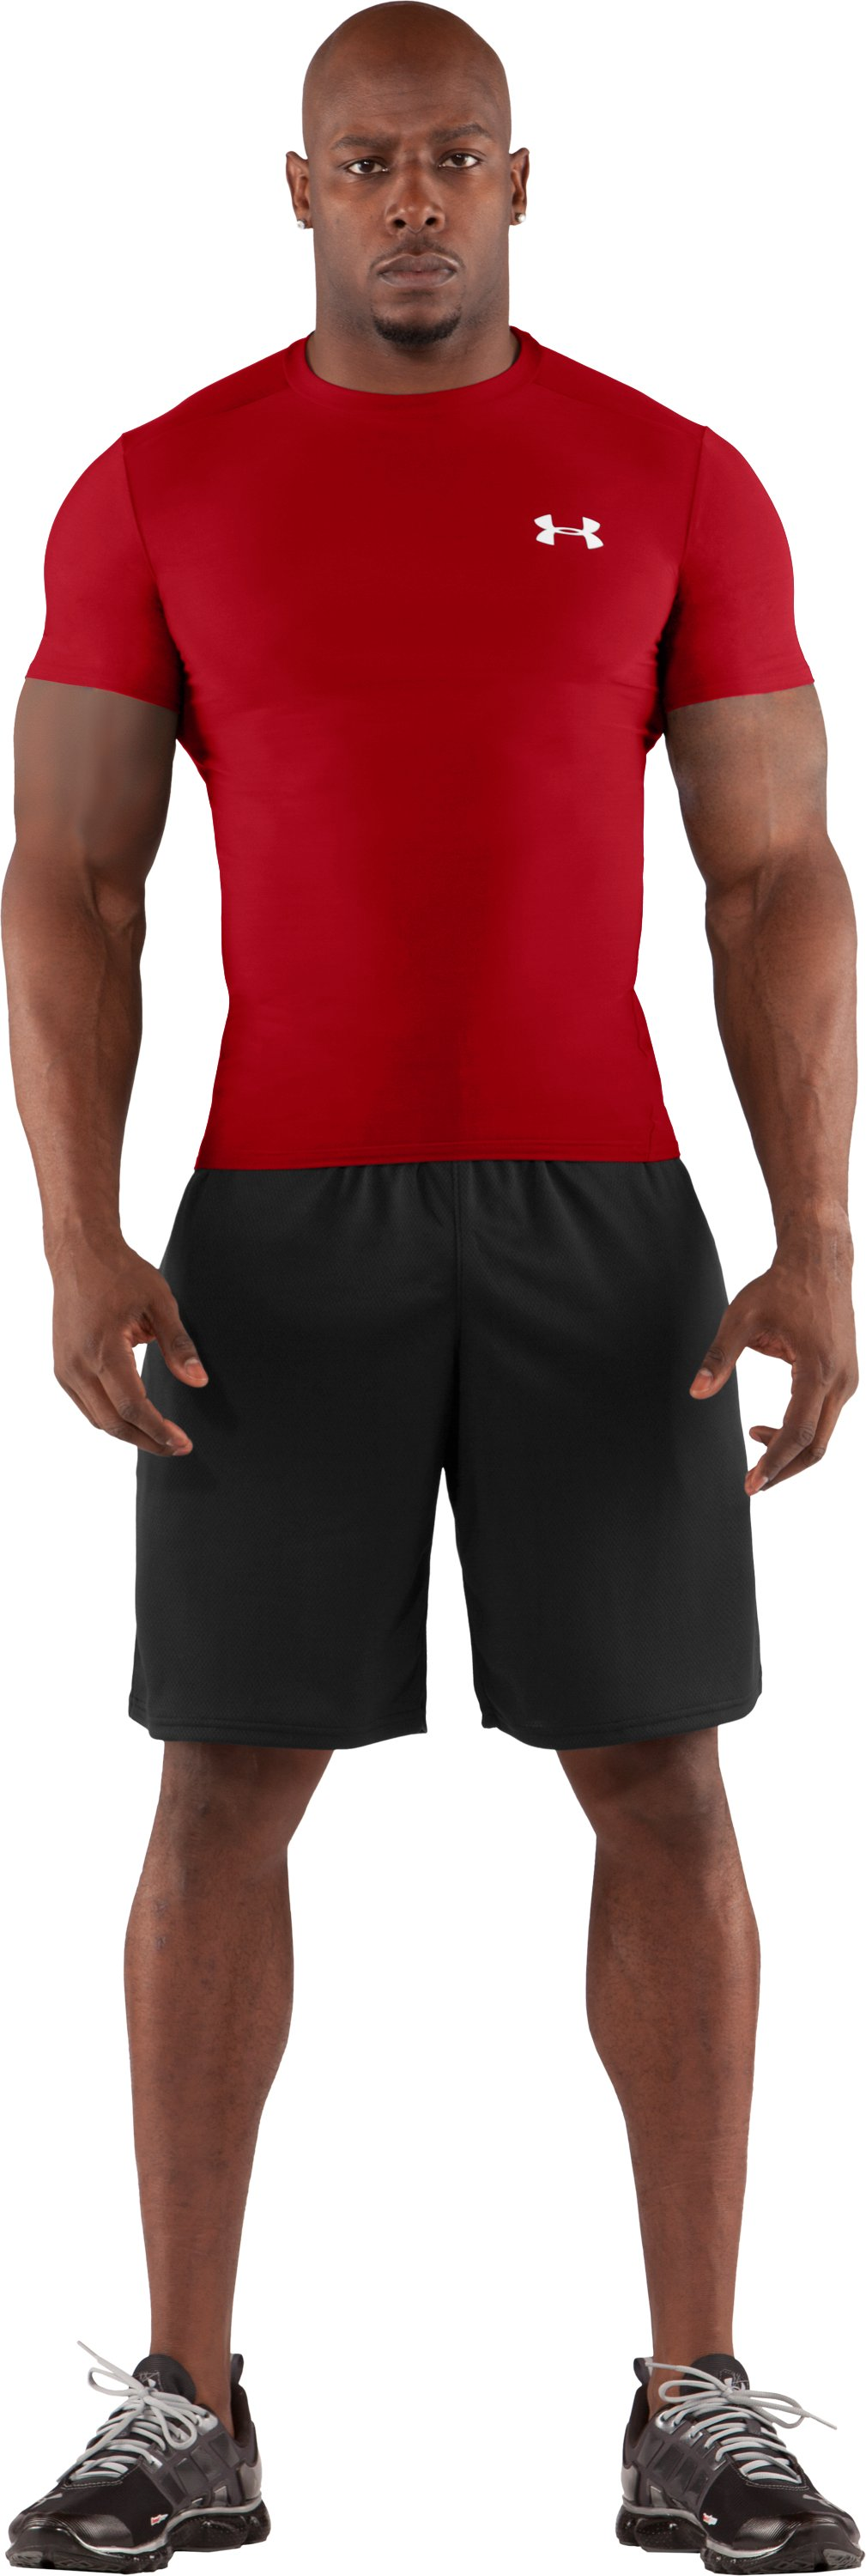 Men's HeatGear® Compression Short Sleeve T-Shirt, Red, zoomed image